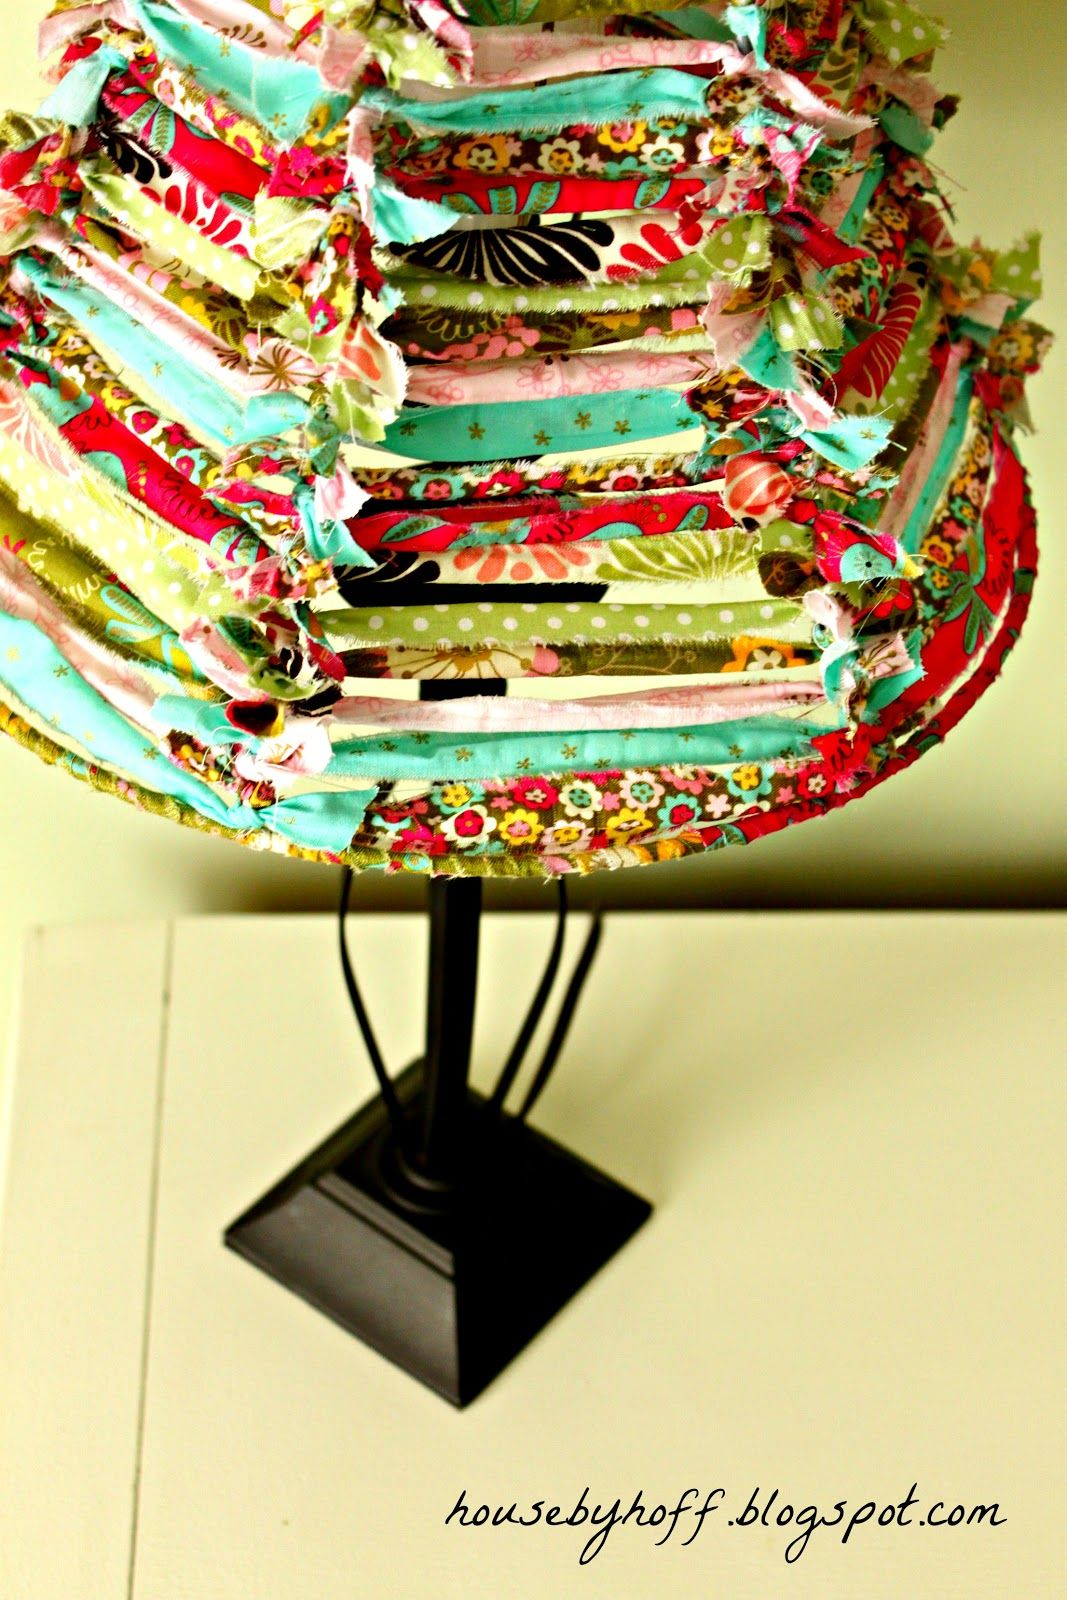 A Fabric Scrap Lampshade It S 30 Thursday With Images Fabric